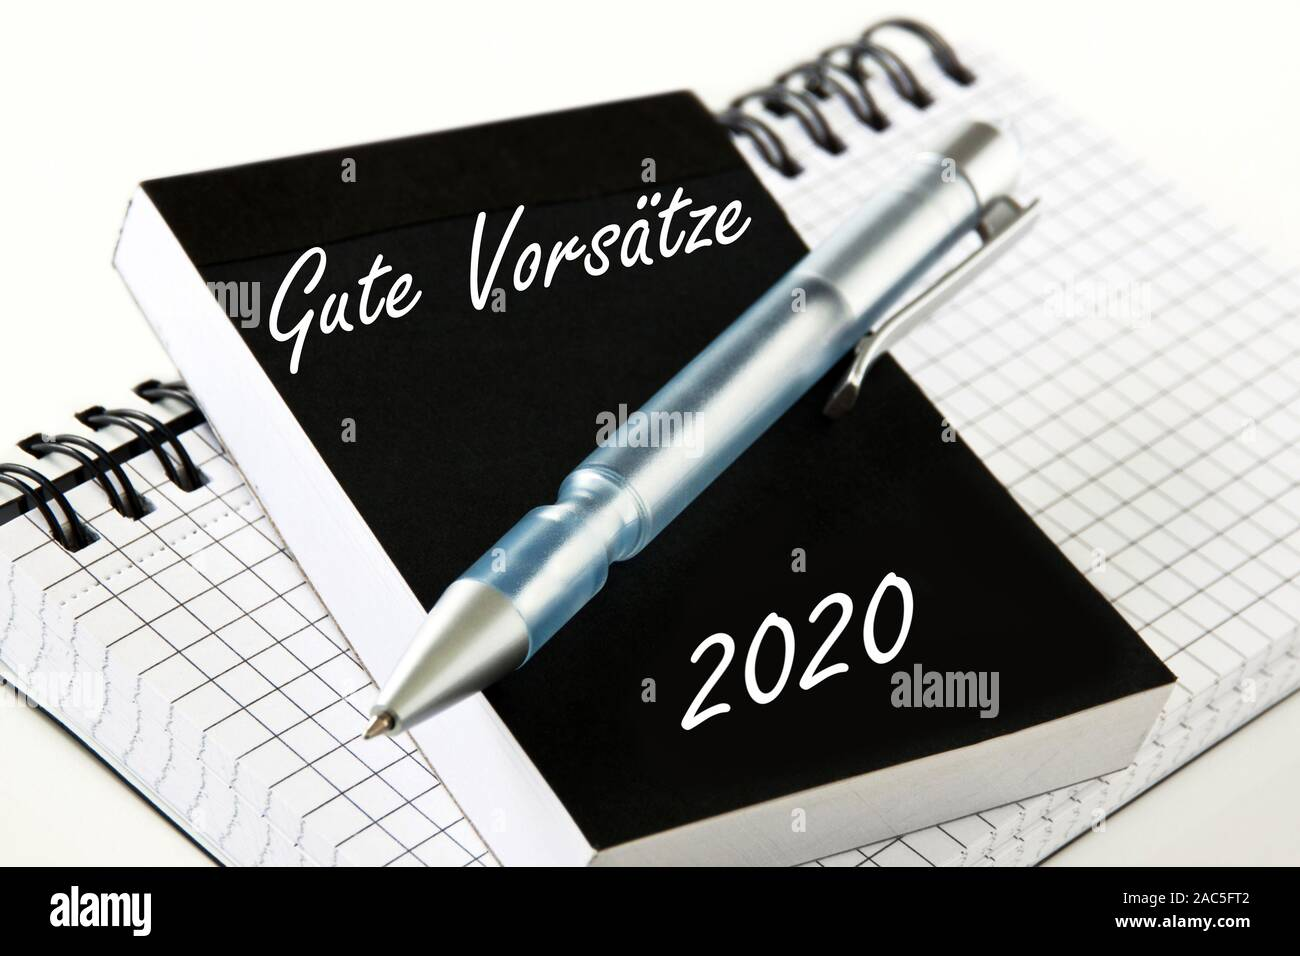 Planning 2020 and German: New years resolutions Stock Photo